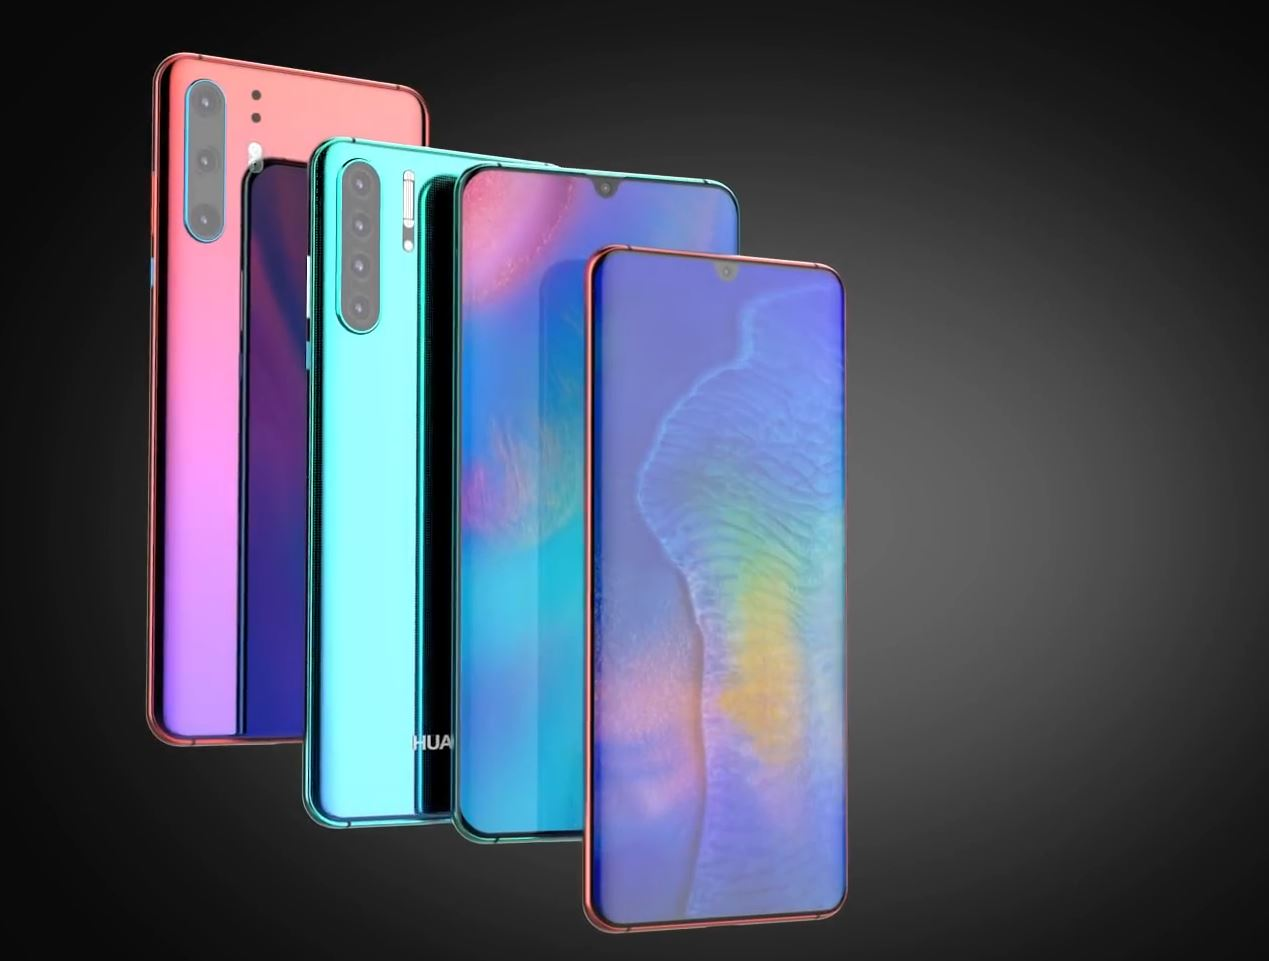 Huawei P30: Here Is The Latest Leaks, Rumours And Release Date